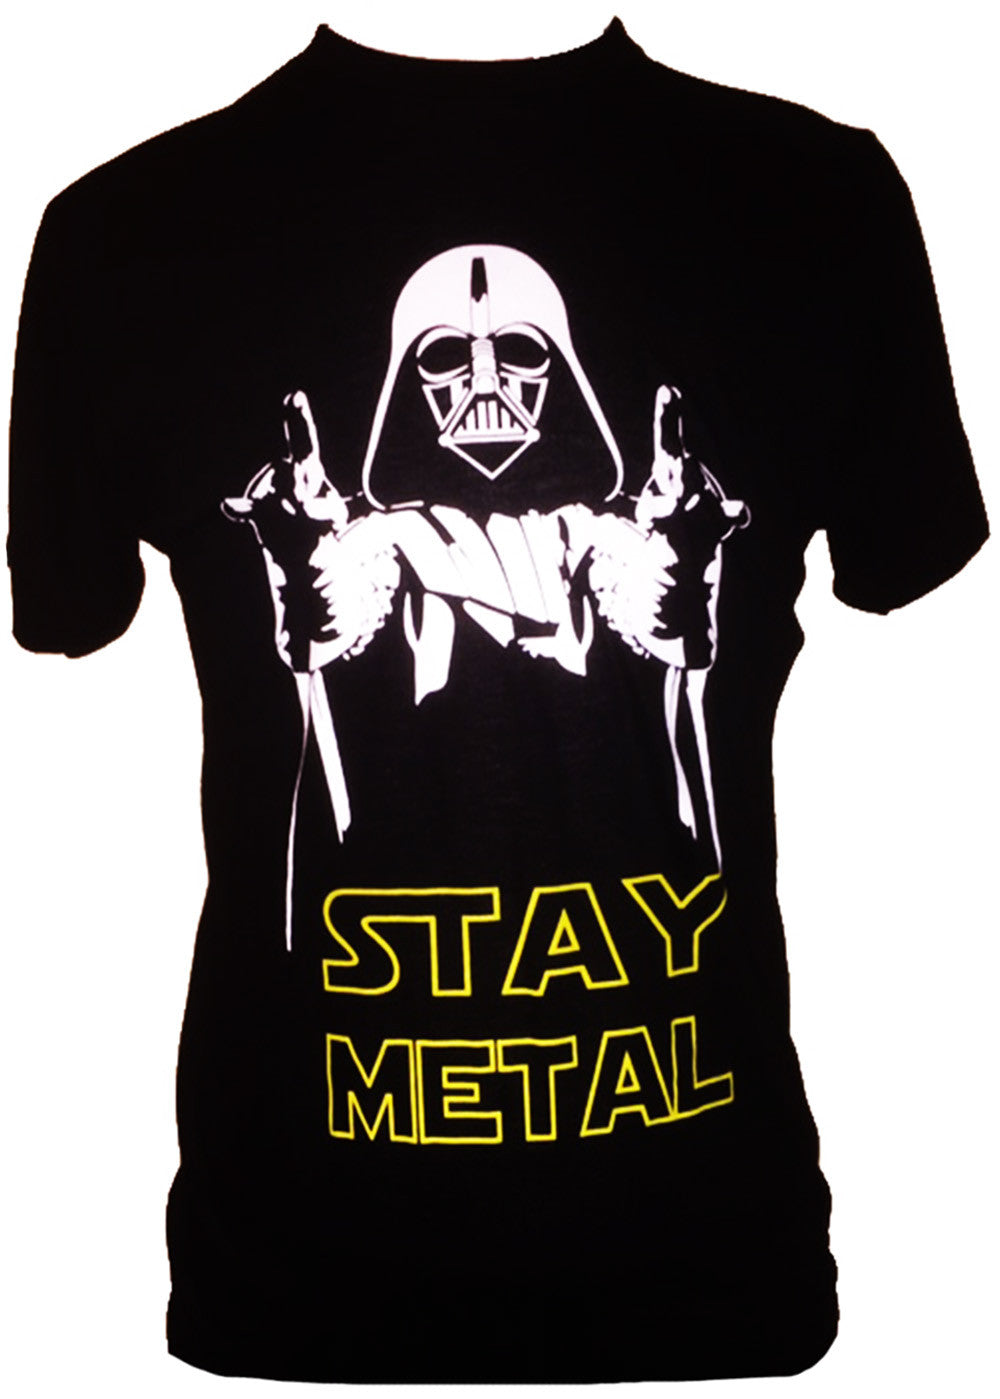 STAY METAL MEN'S TEE - Trailsclothing.com